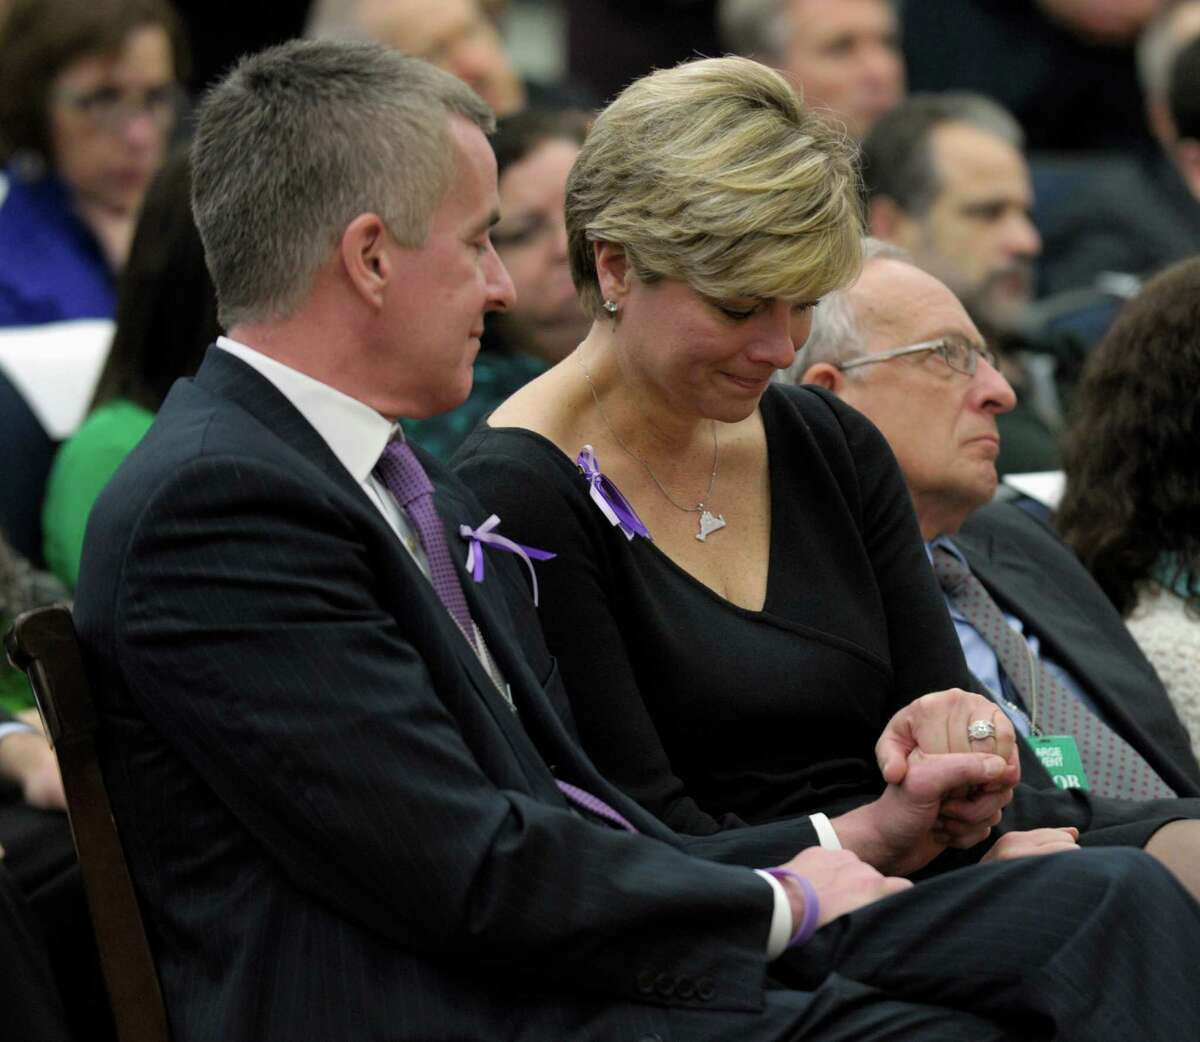 Lynn and Chris McDonnell, whose daughter, Grace, died in the Newtown school shooting, listen as President Barack Obama talks about her in a news conference.